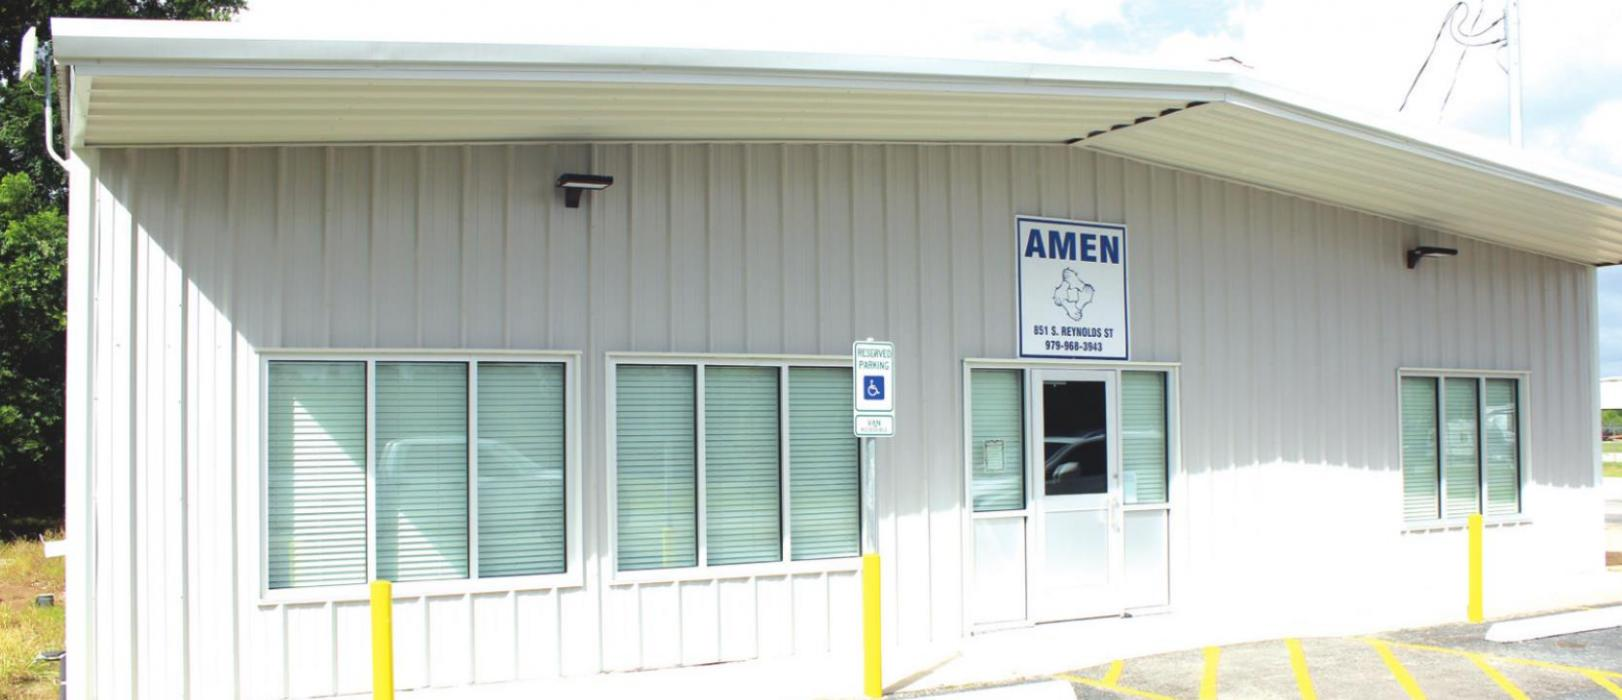 New AMEN Opens This Week